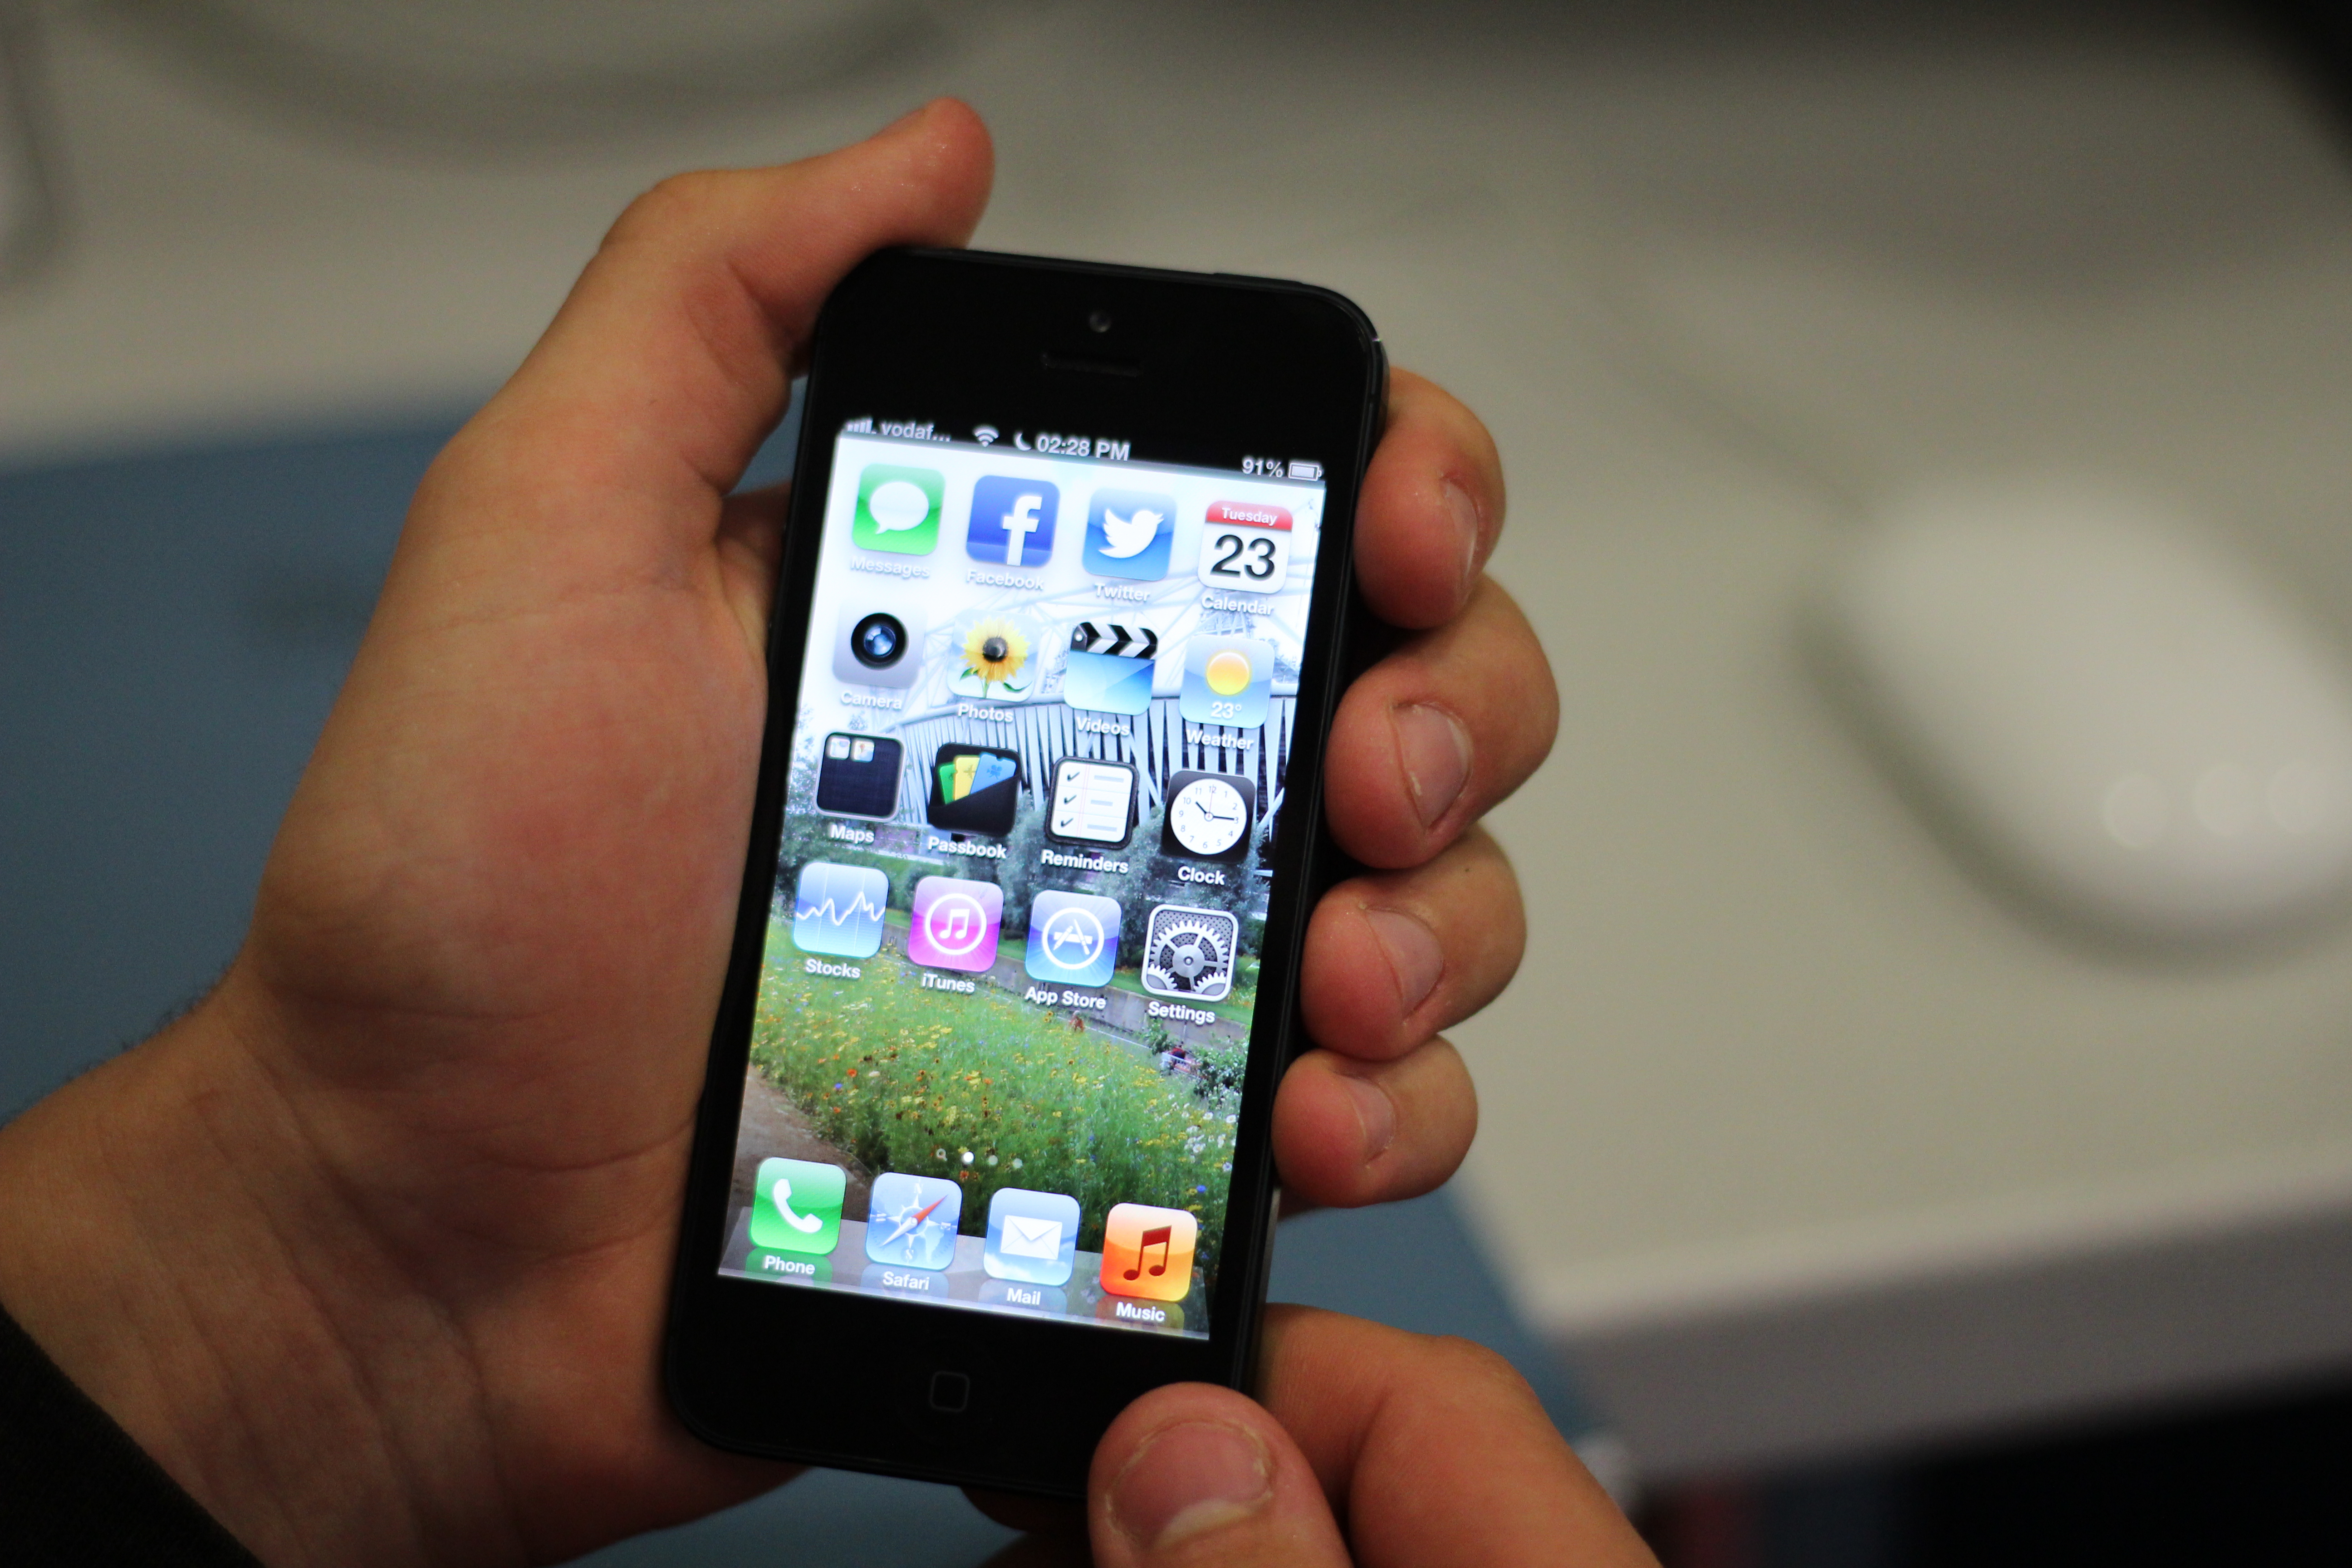 iPhone 5 review: Fast, not flawless